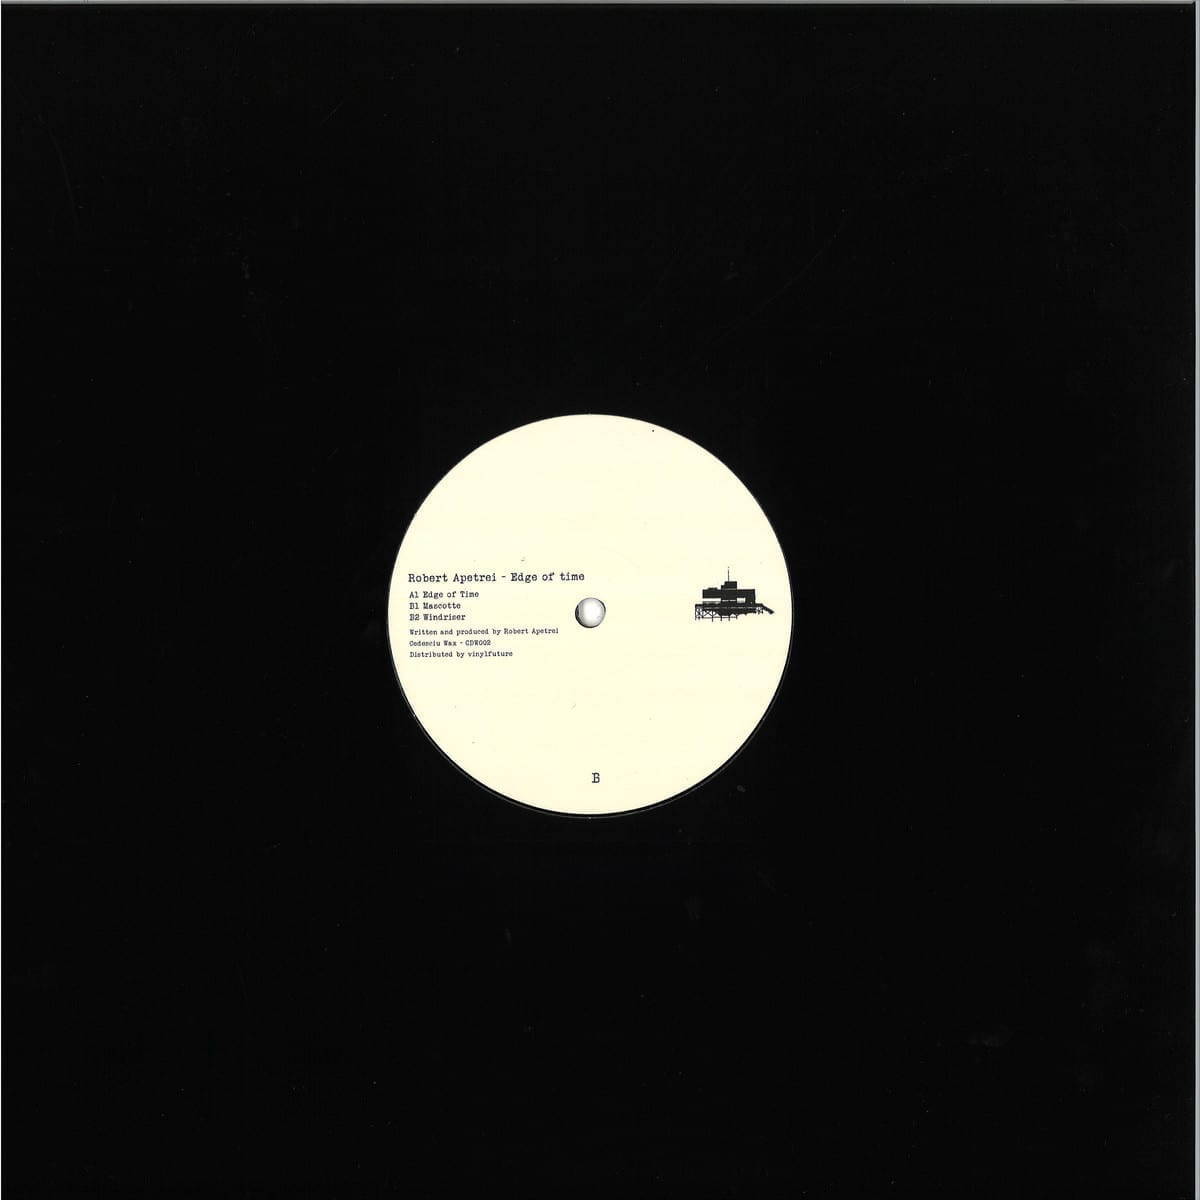 robert apetrei - edge of time [cedesciu wax] back